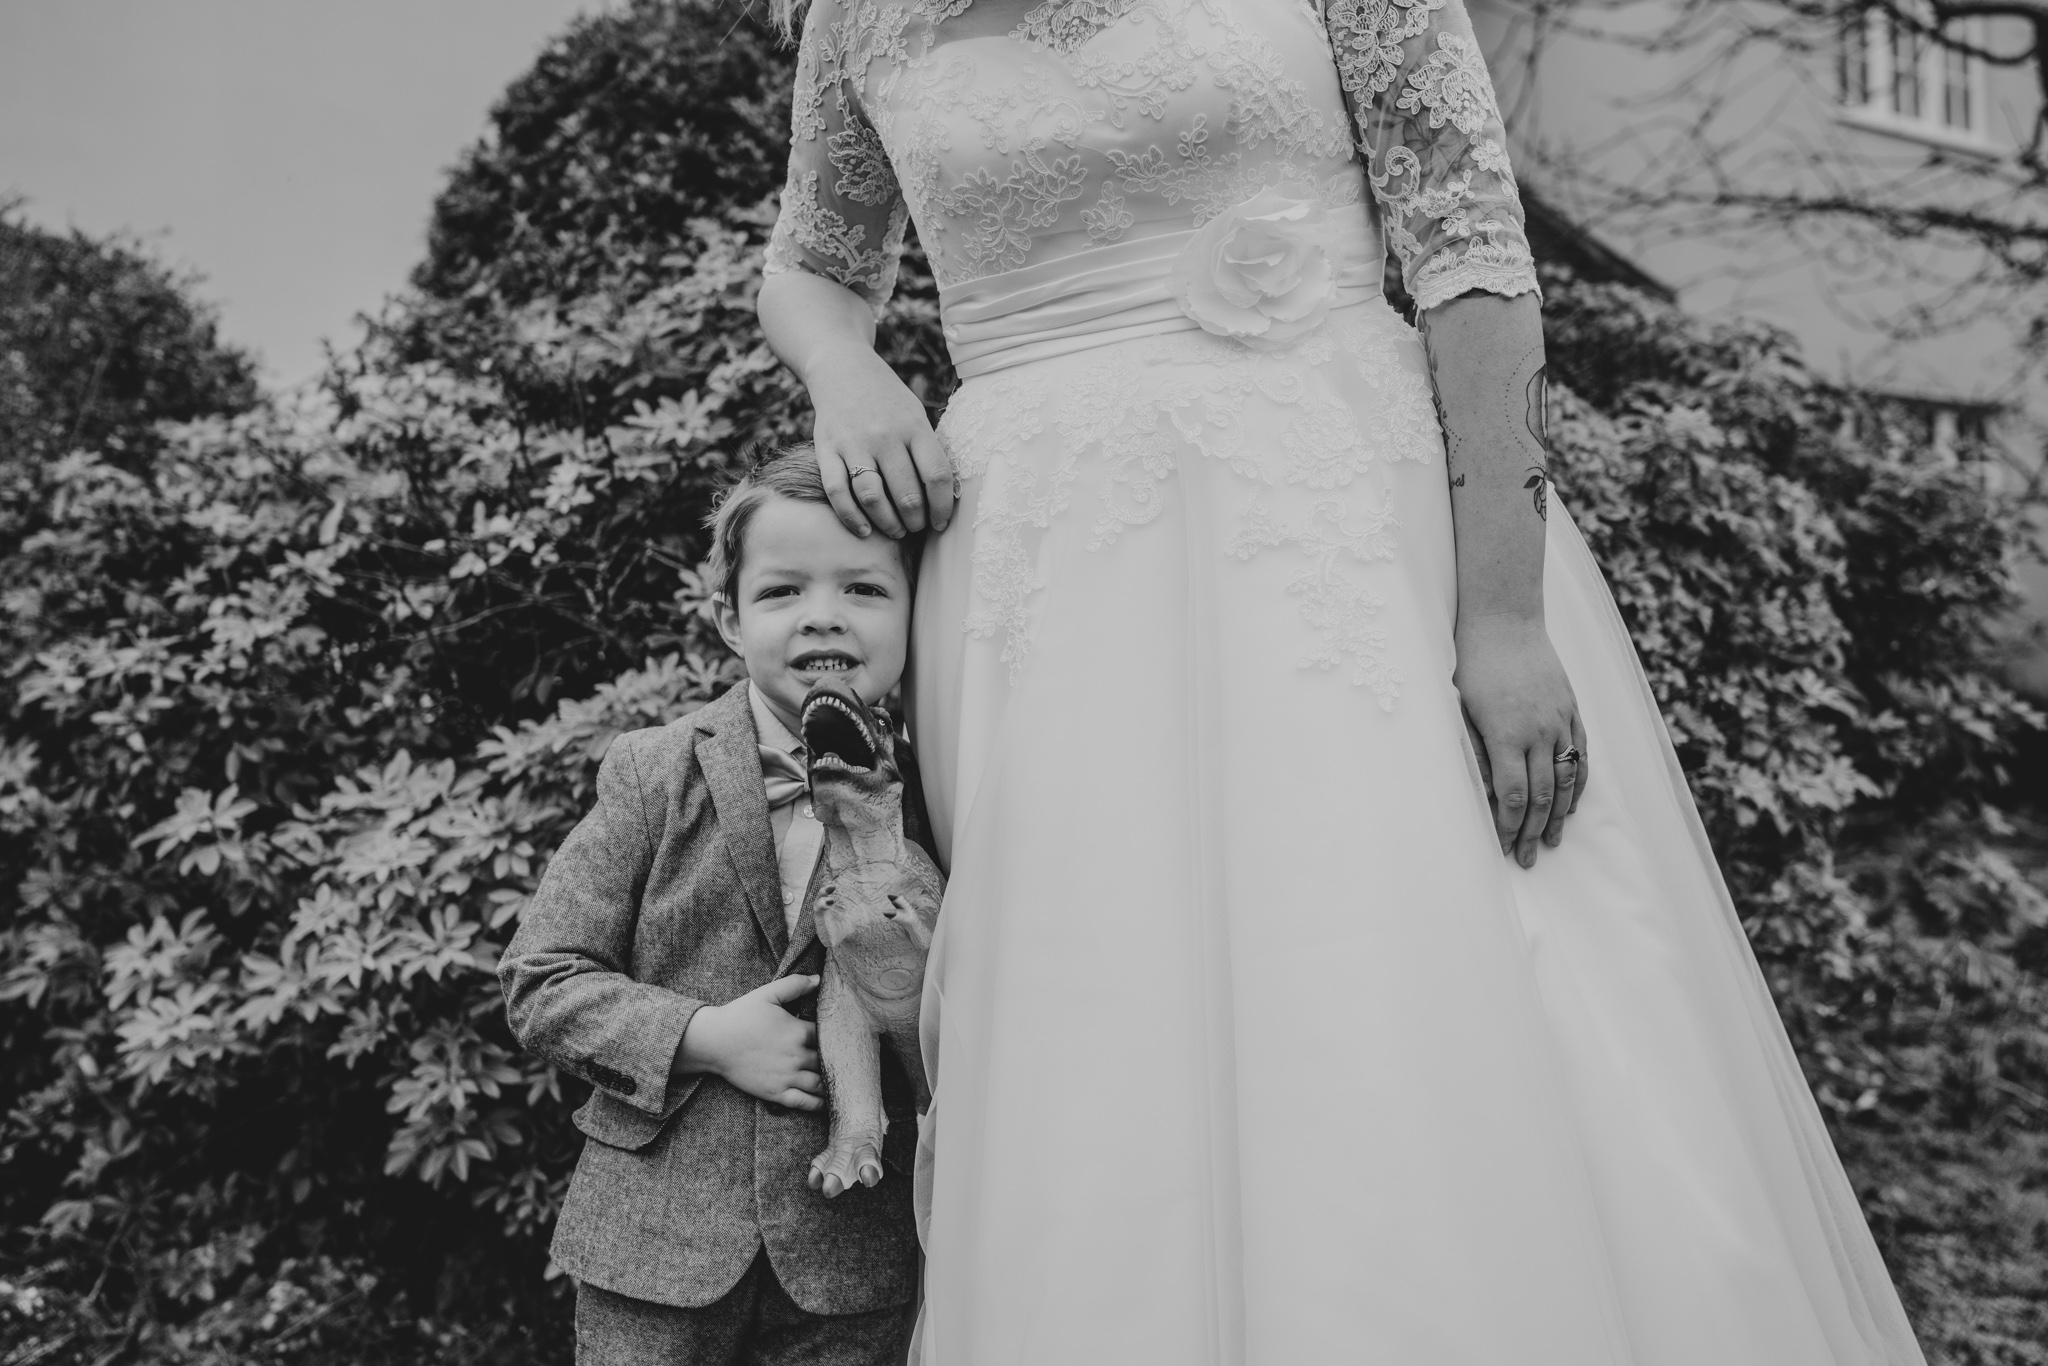 grace-elizabeth-essex-wedding-photographer-rhia-james-family-norfolk-essex-devon-suffolk (7 of 39).jpg